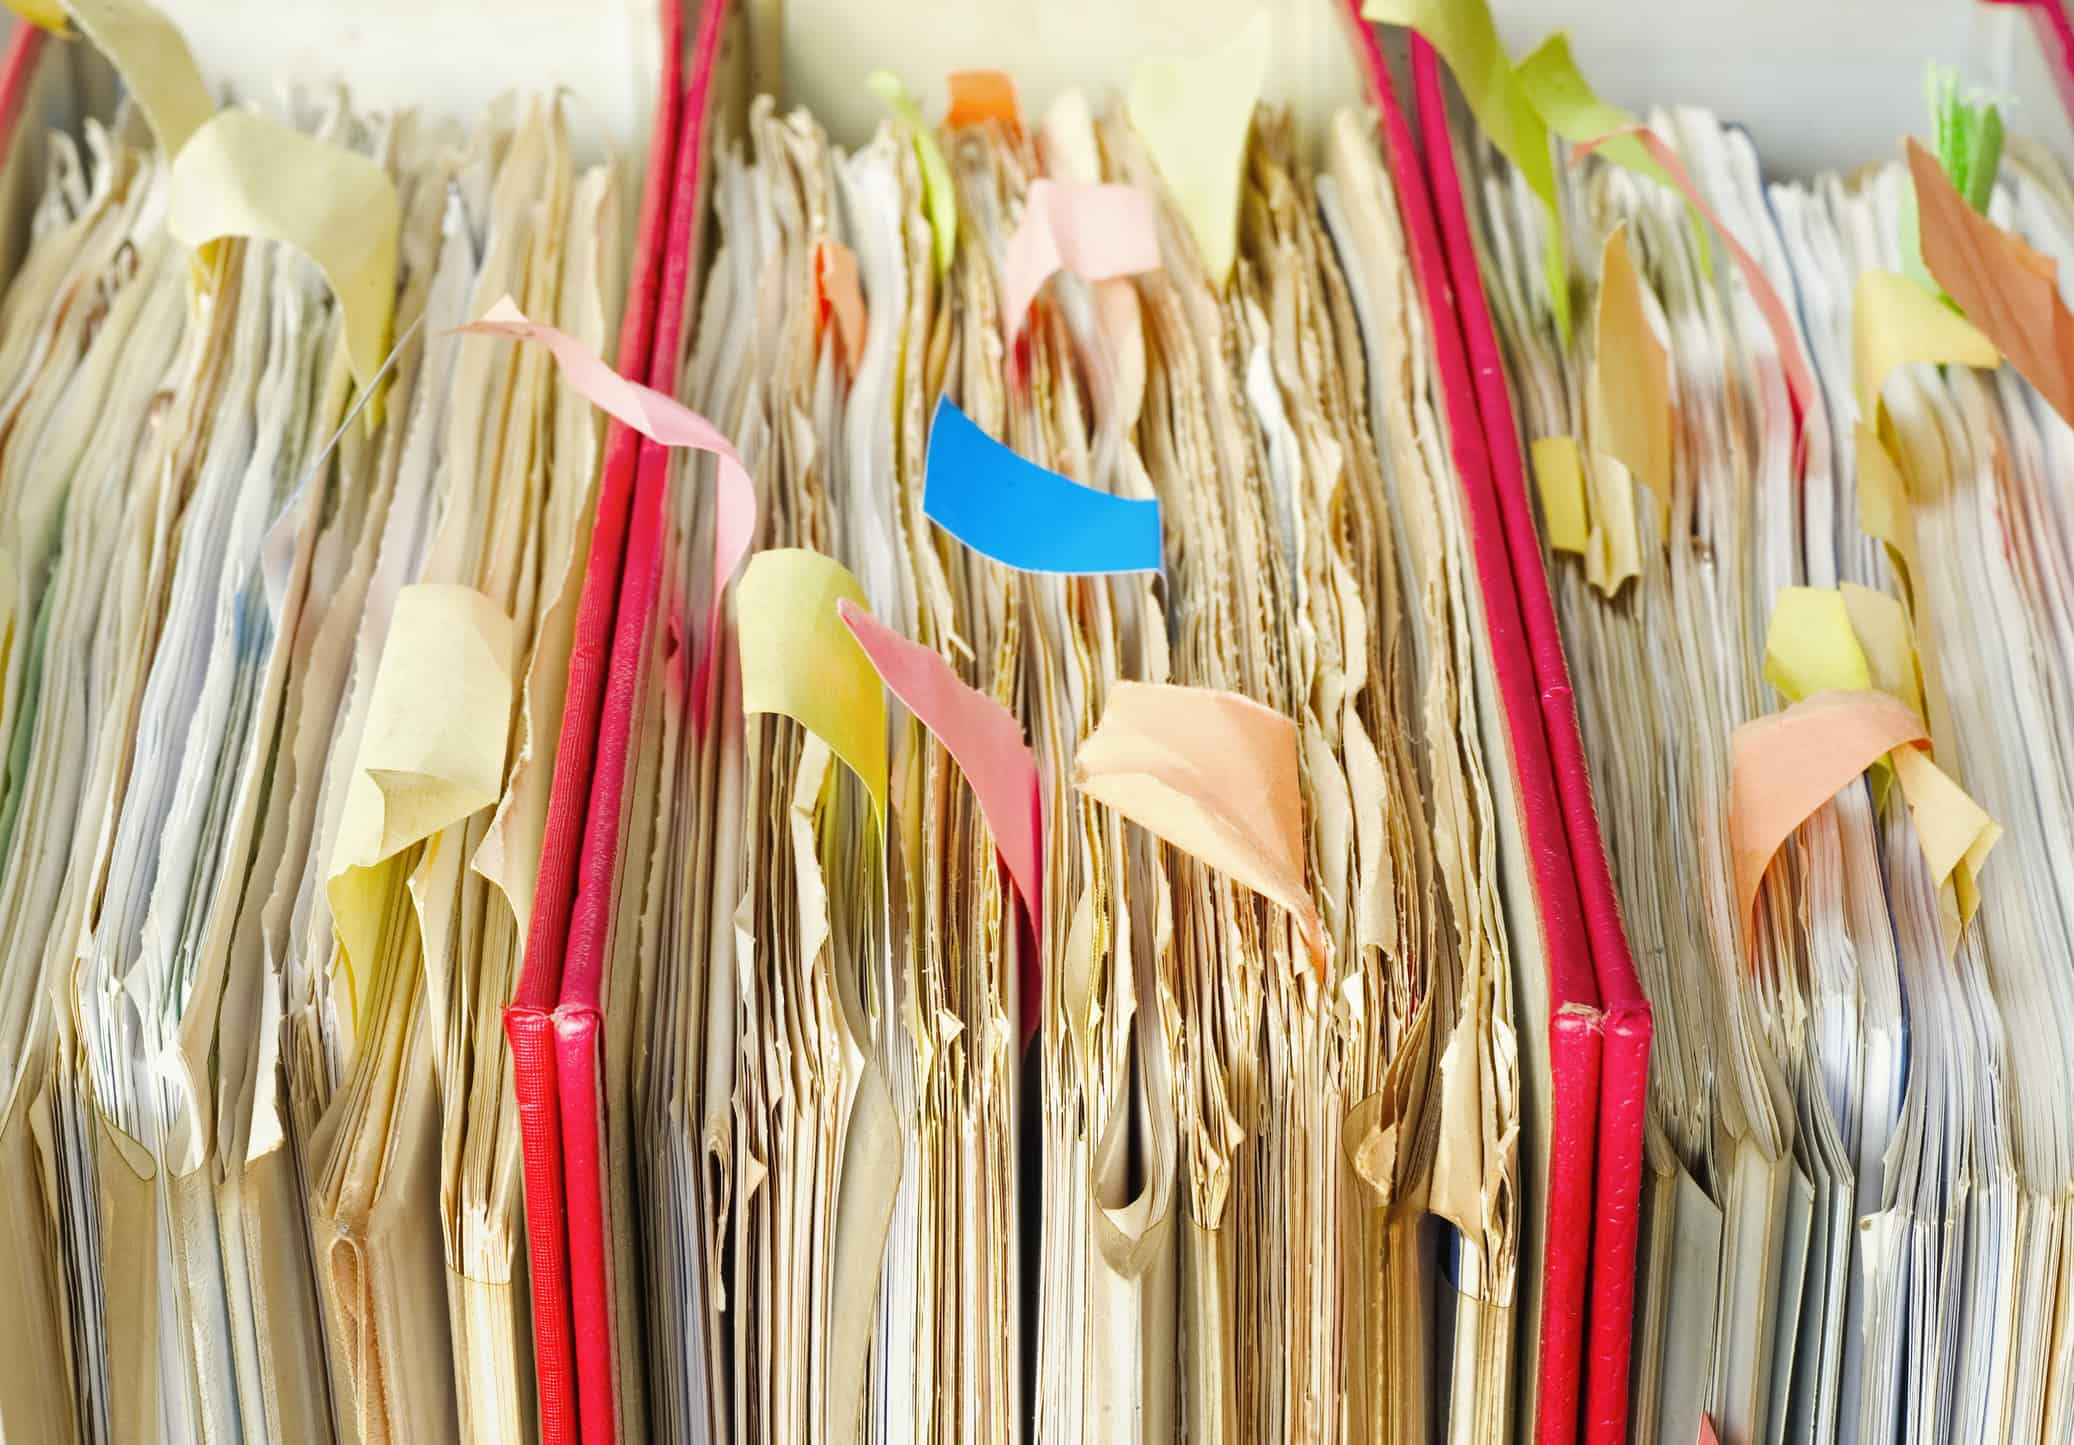 messy file folders, close up, selective focus